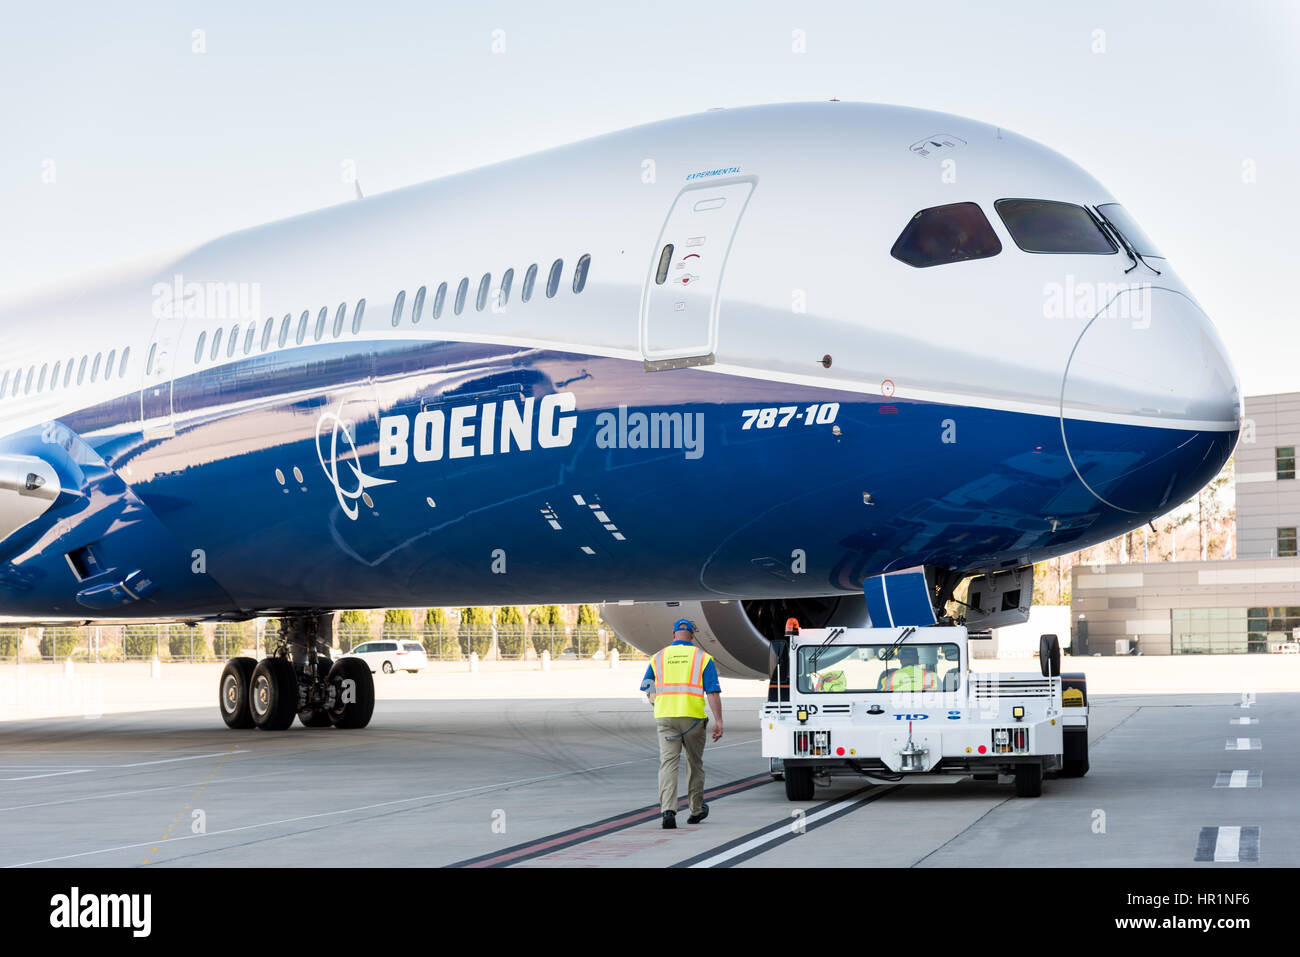 787 10 Dreamliner >> The New Boeing 787 10 Dreamliner Aircraft Unveiled At The Boeing